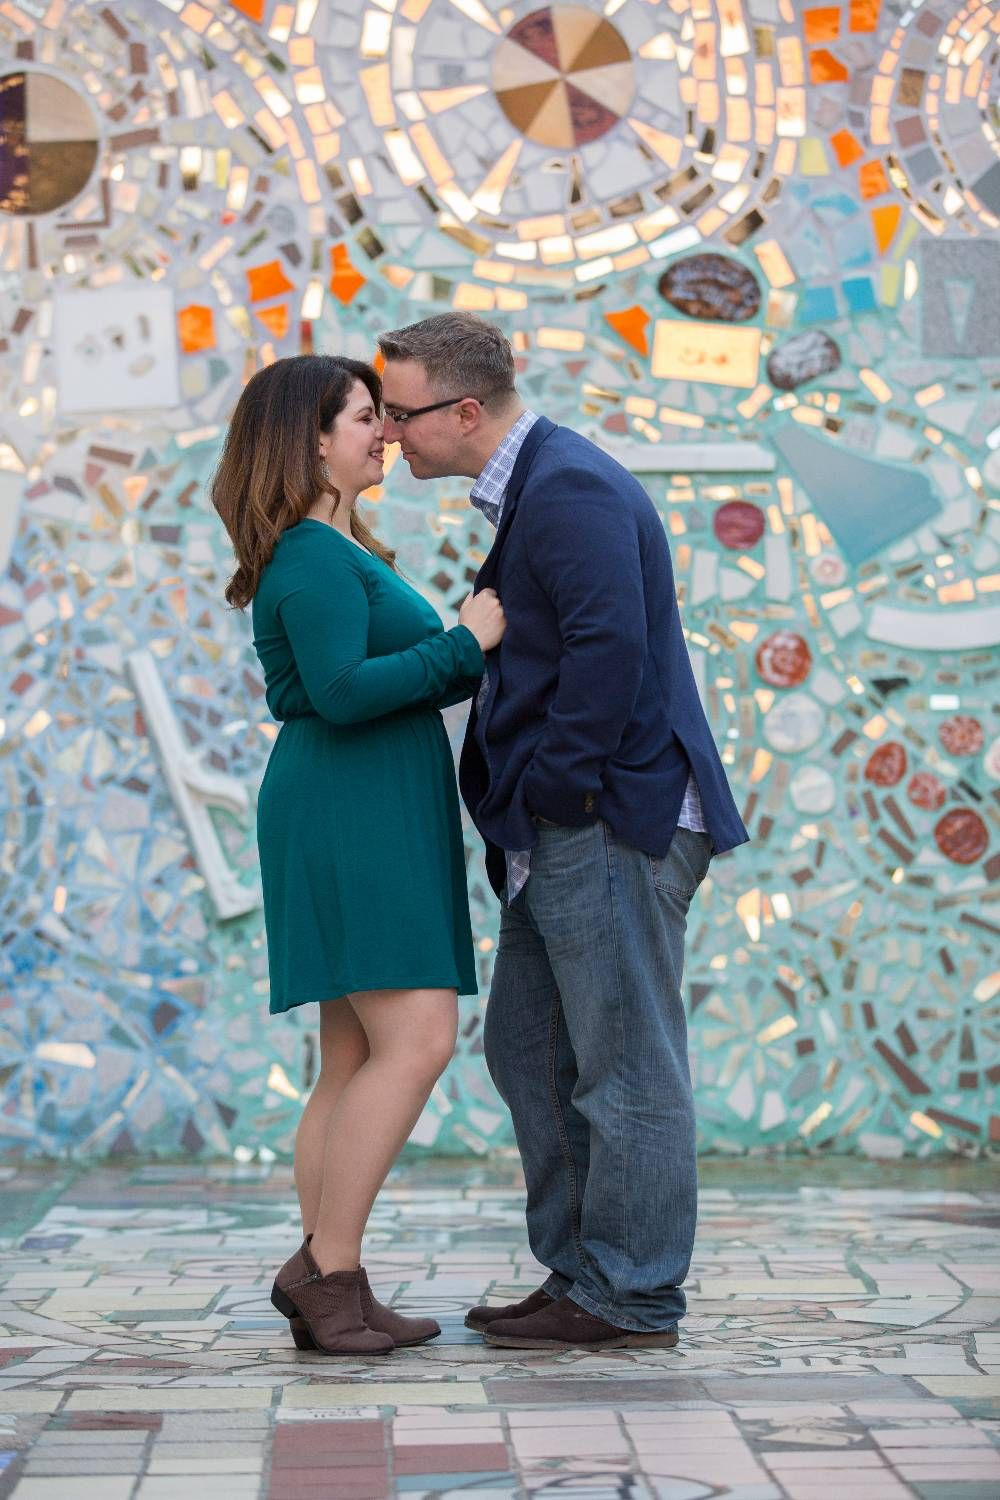 Engagement Photography by Damon Bilger Weddings